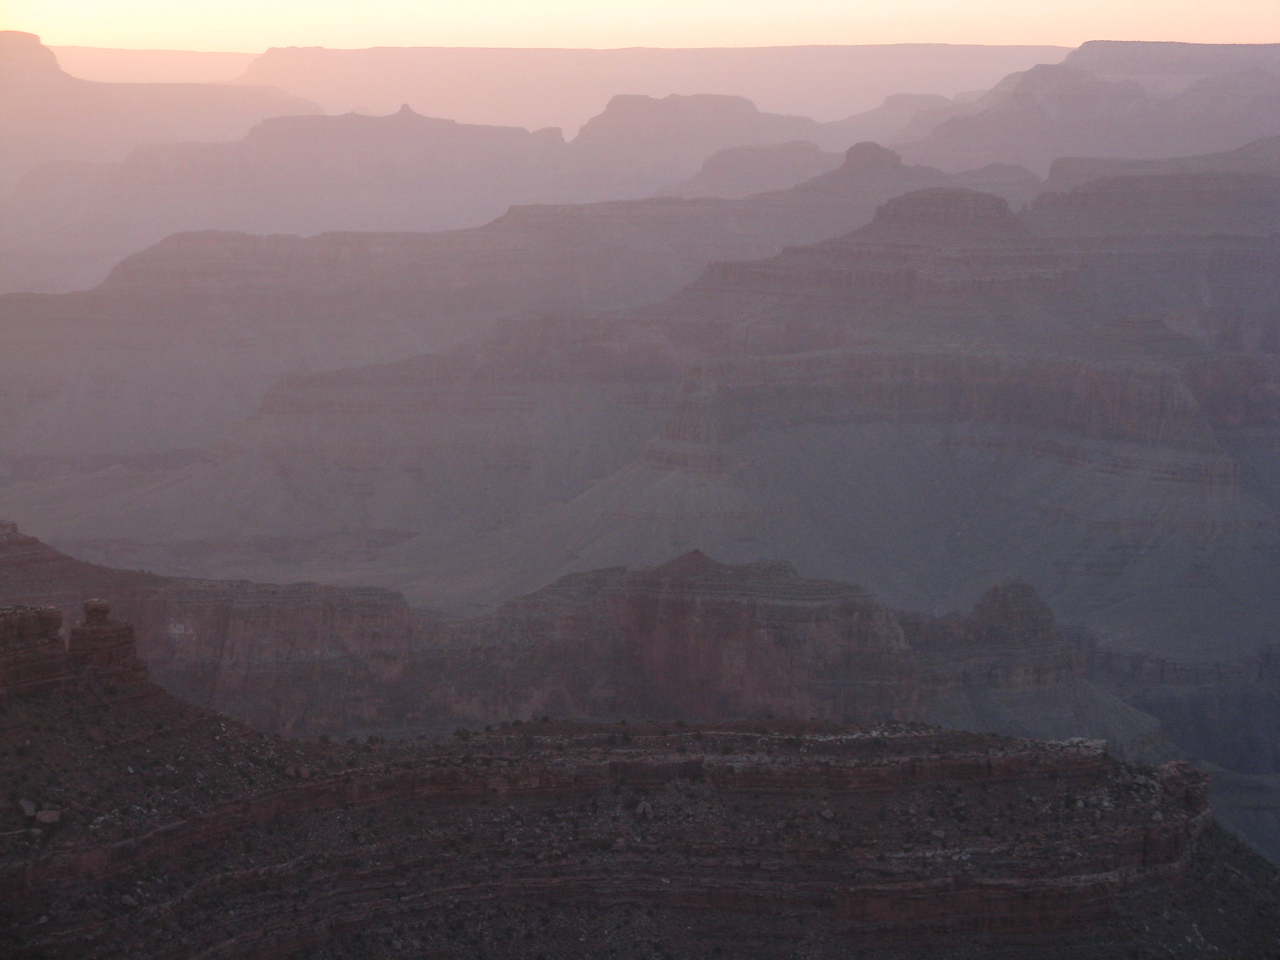 Angular light gives the canyon an appearance of a series of silhouettes.